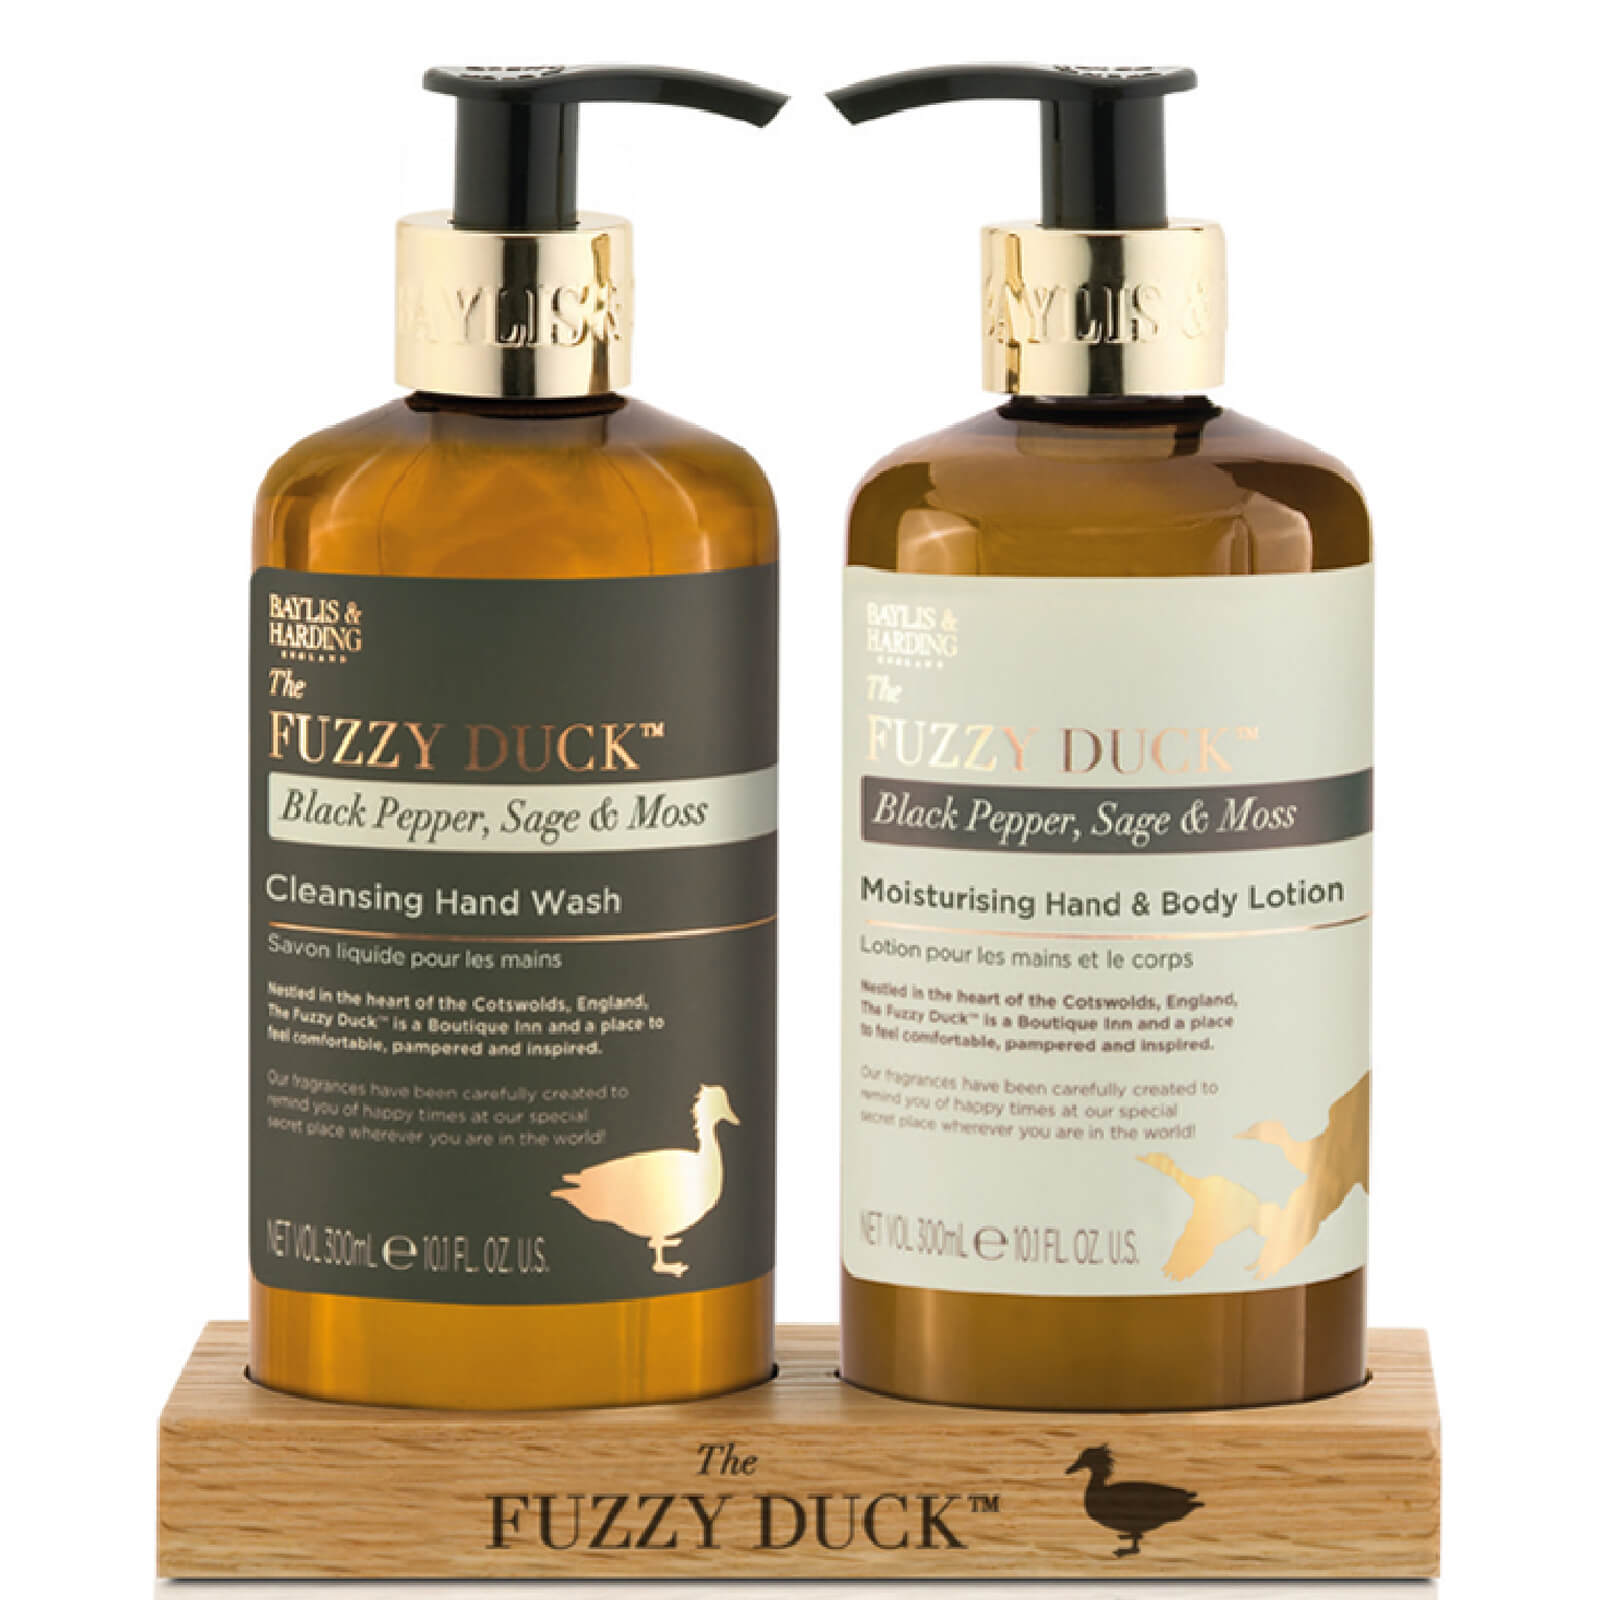 Baylis & Harding Fuzzy Duck Black Pepper, Sage & Moss 2 Bottle Set